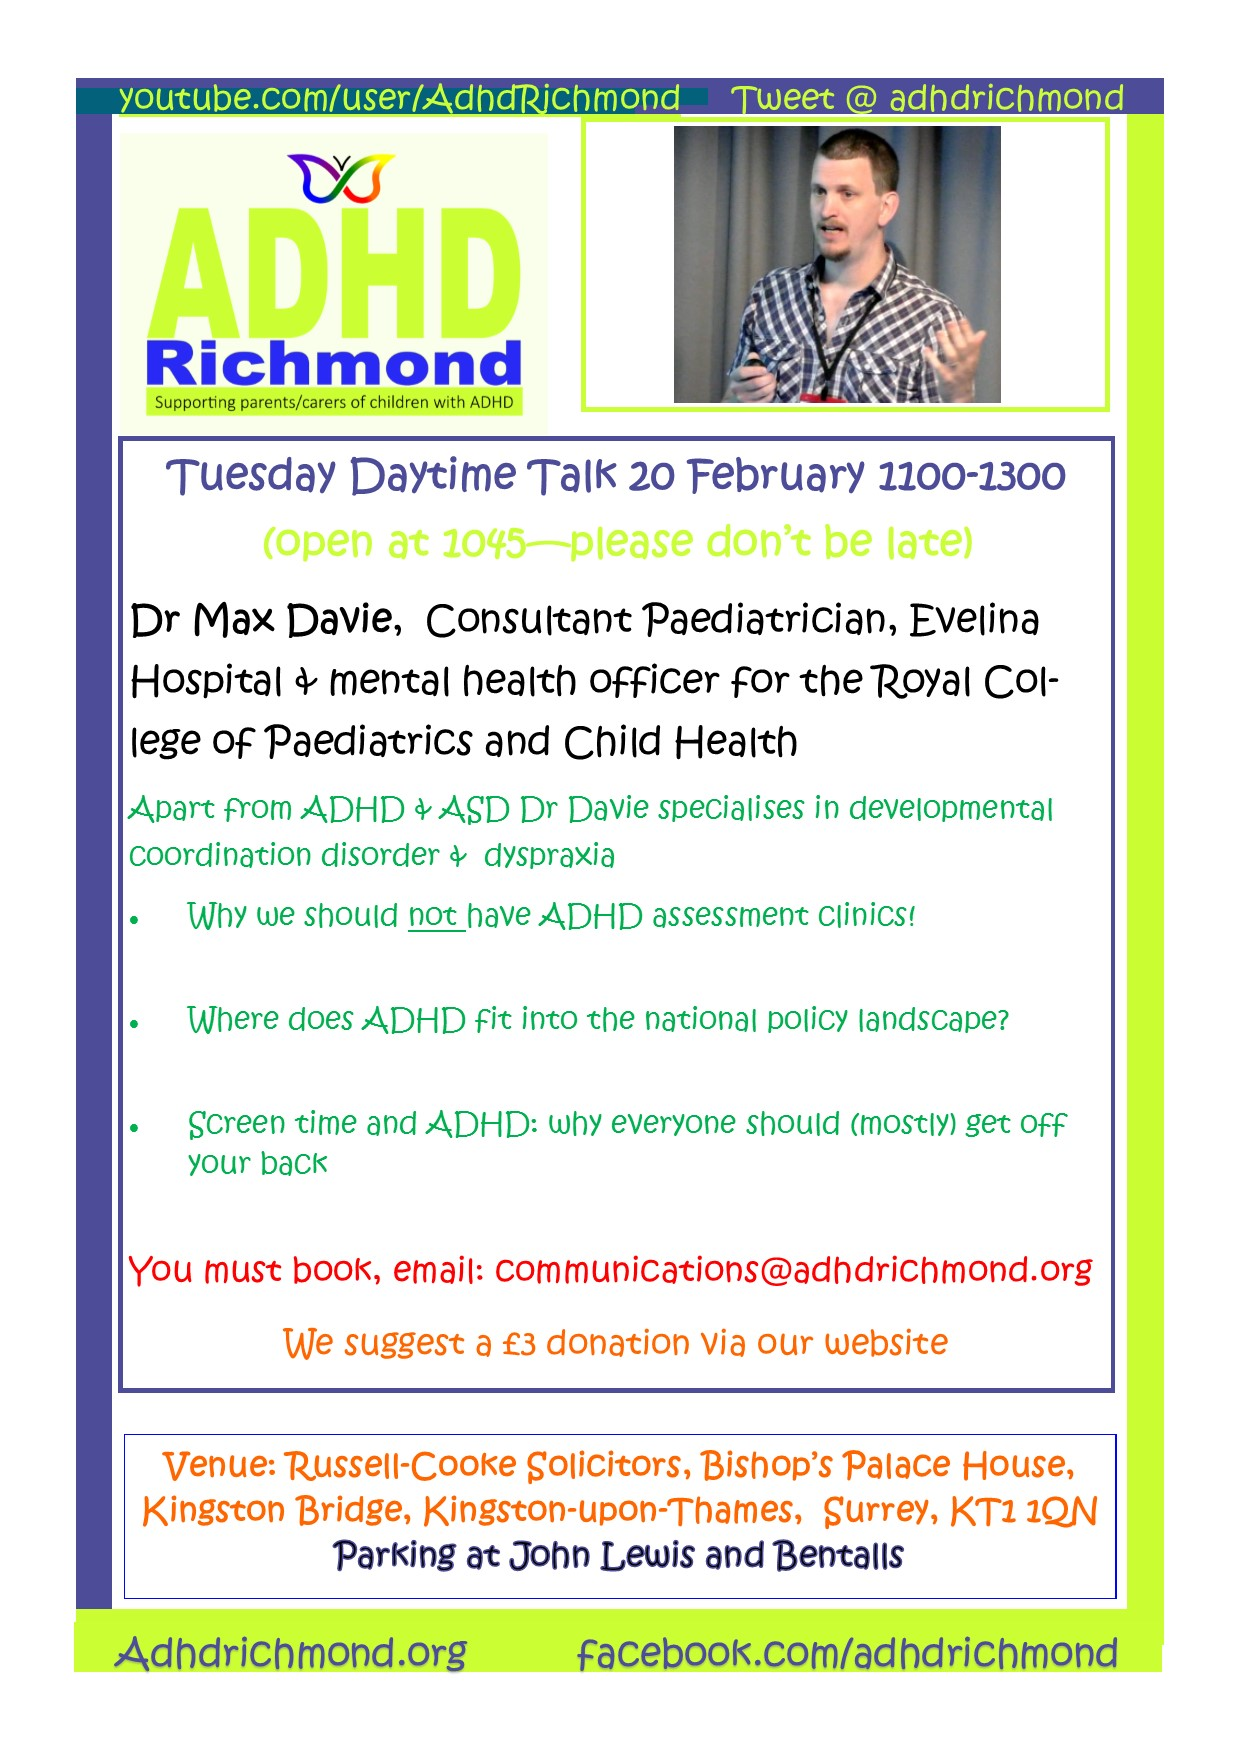 ADHD Richmond free daytime Talk on ADHD, Autism & Dyspraxia by Dr Max Davie